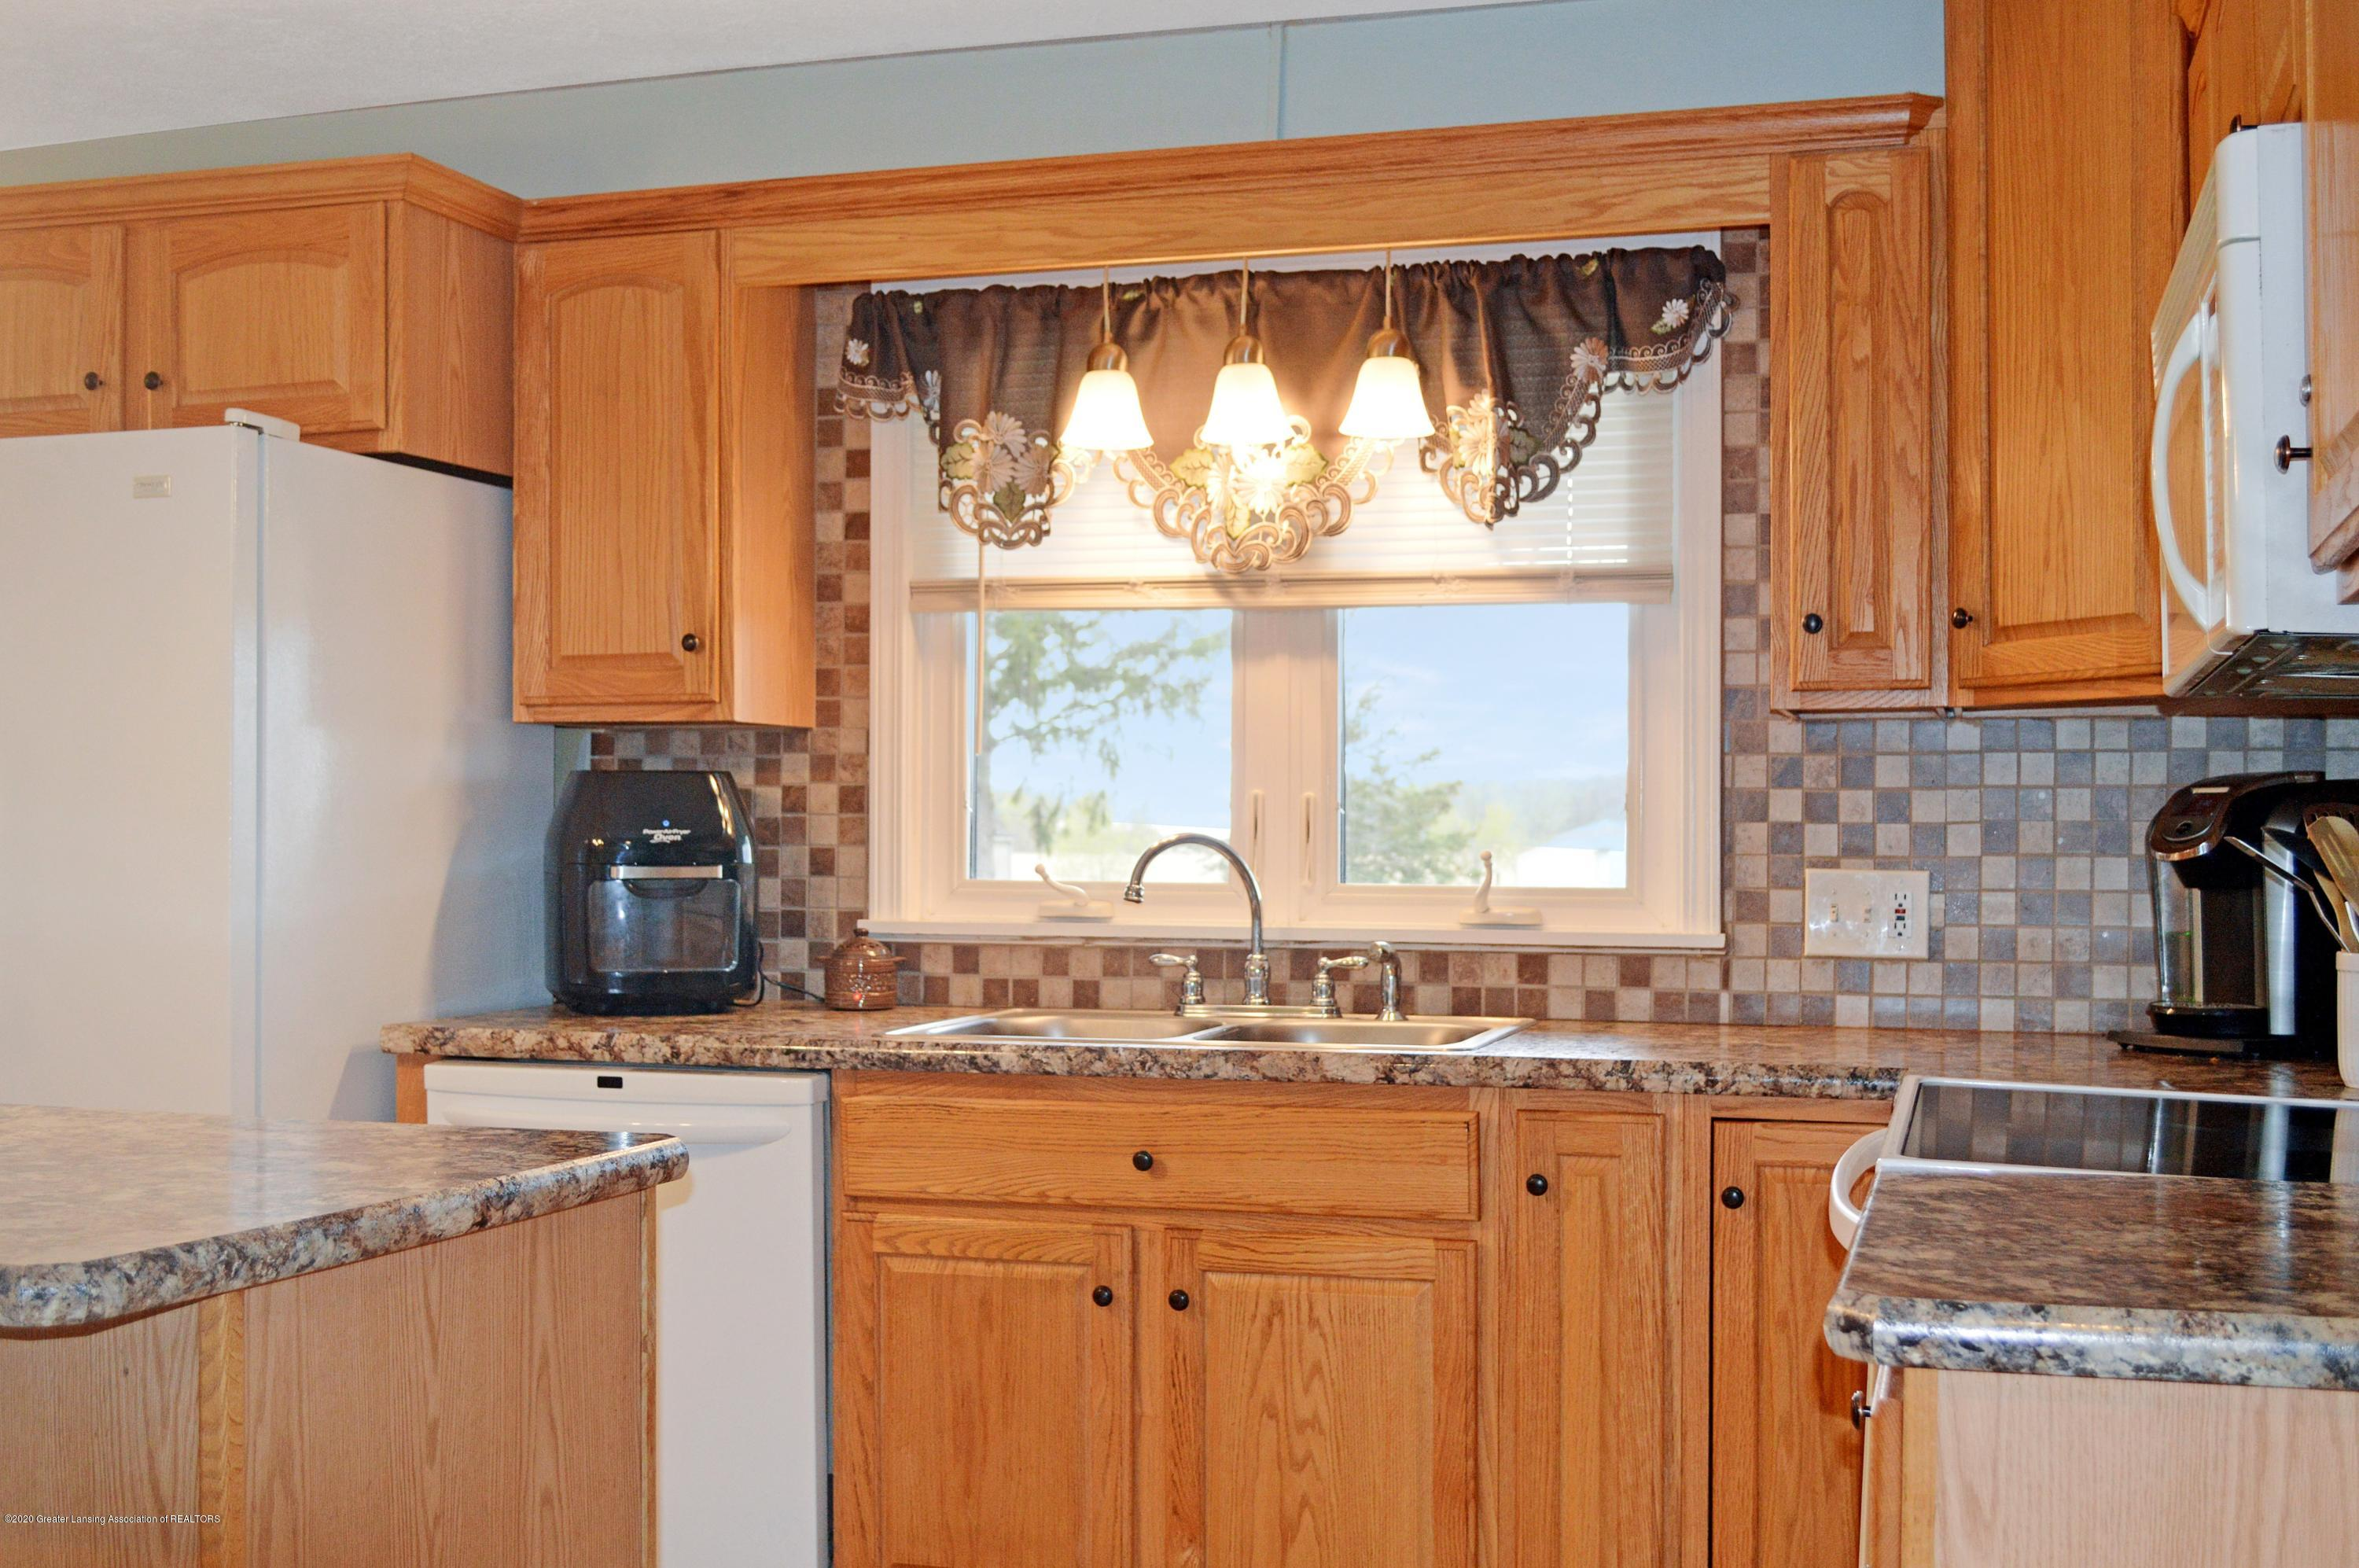 1636 S Lansing St - Kitchen - 5